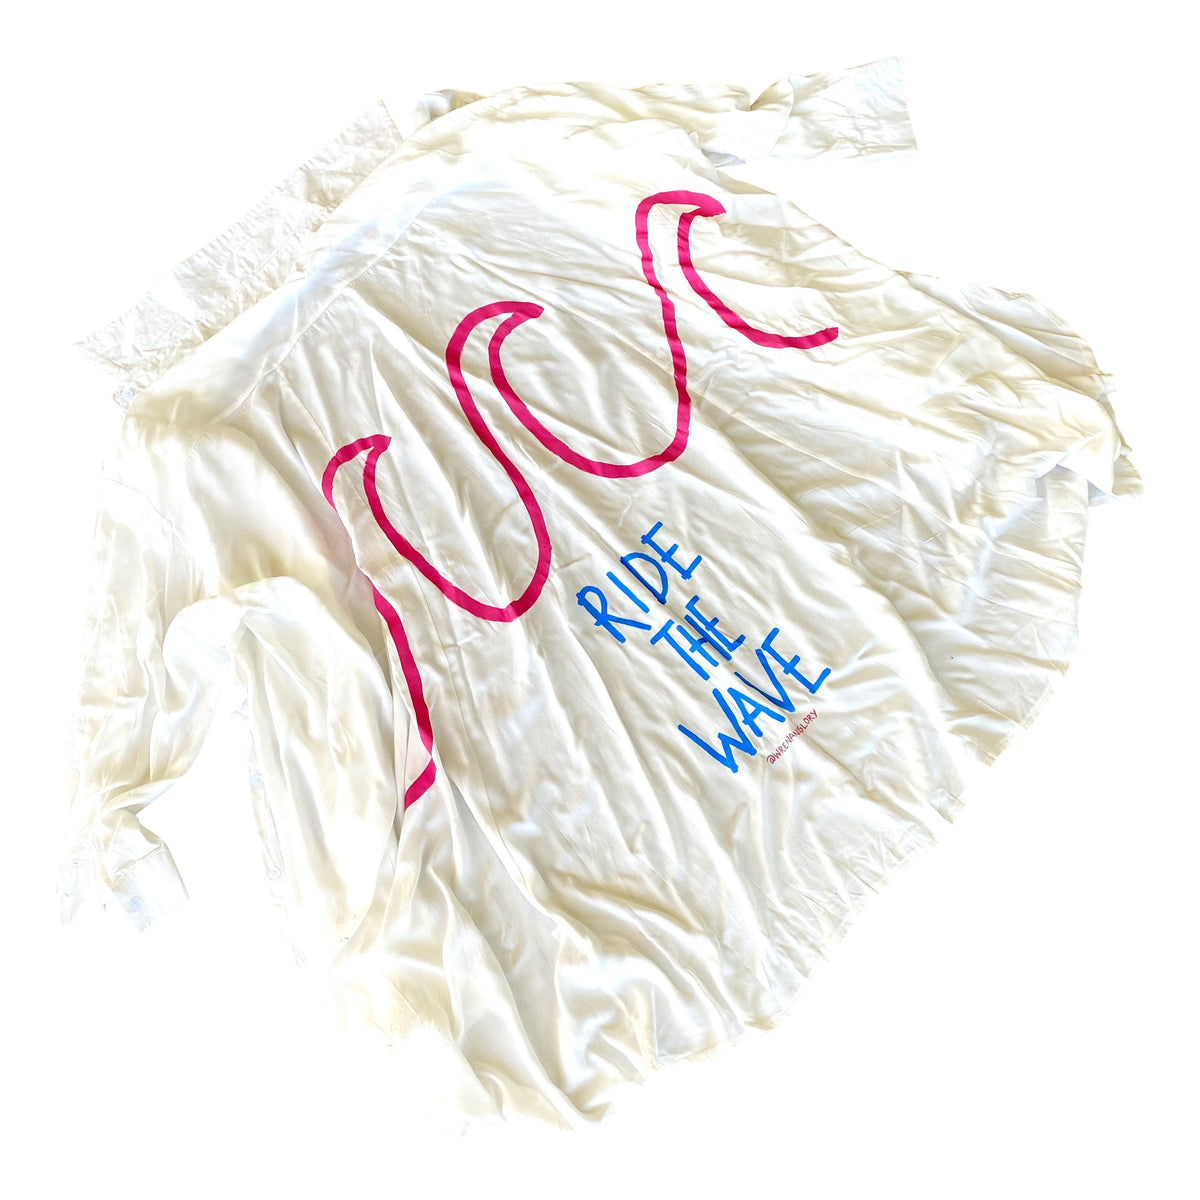 Long, button down shirt. Can be left open, buttoned, or tied in the front Bright pink large waves, with RIDE THE WAVE painted in blue on back. Signed @wrenandglory.